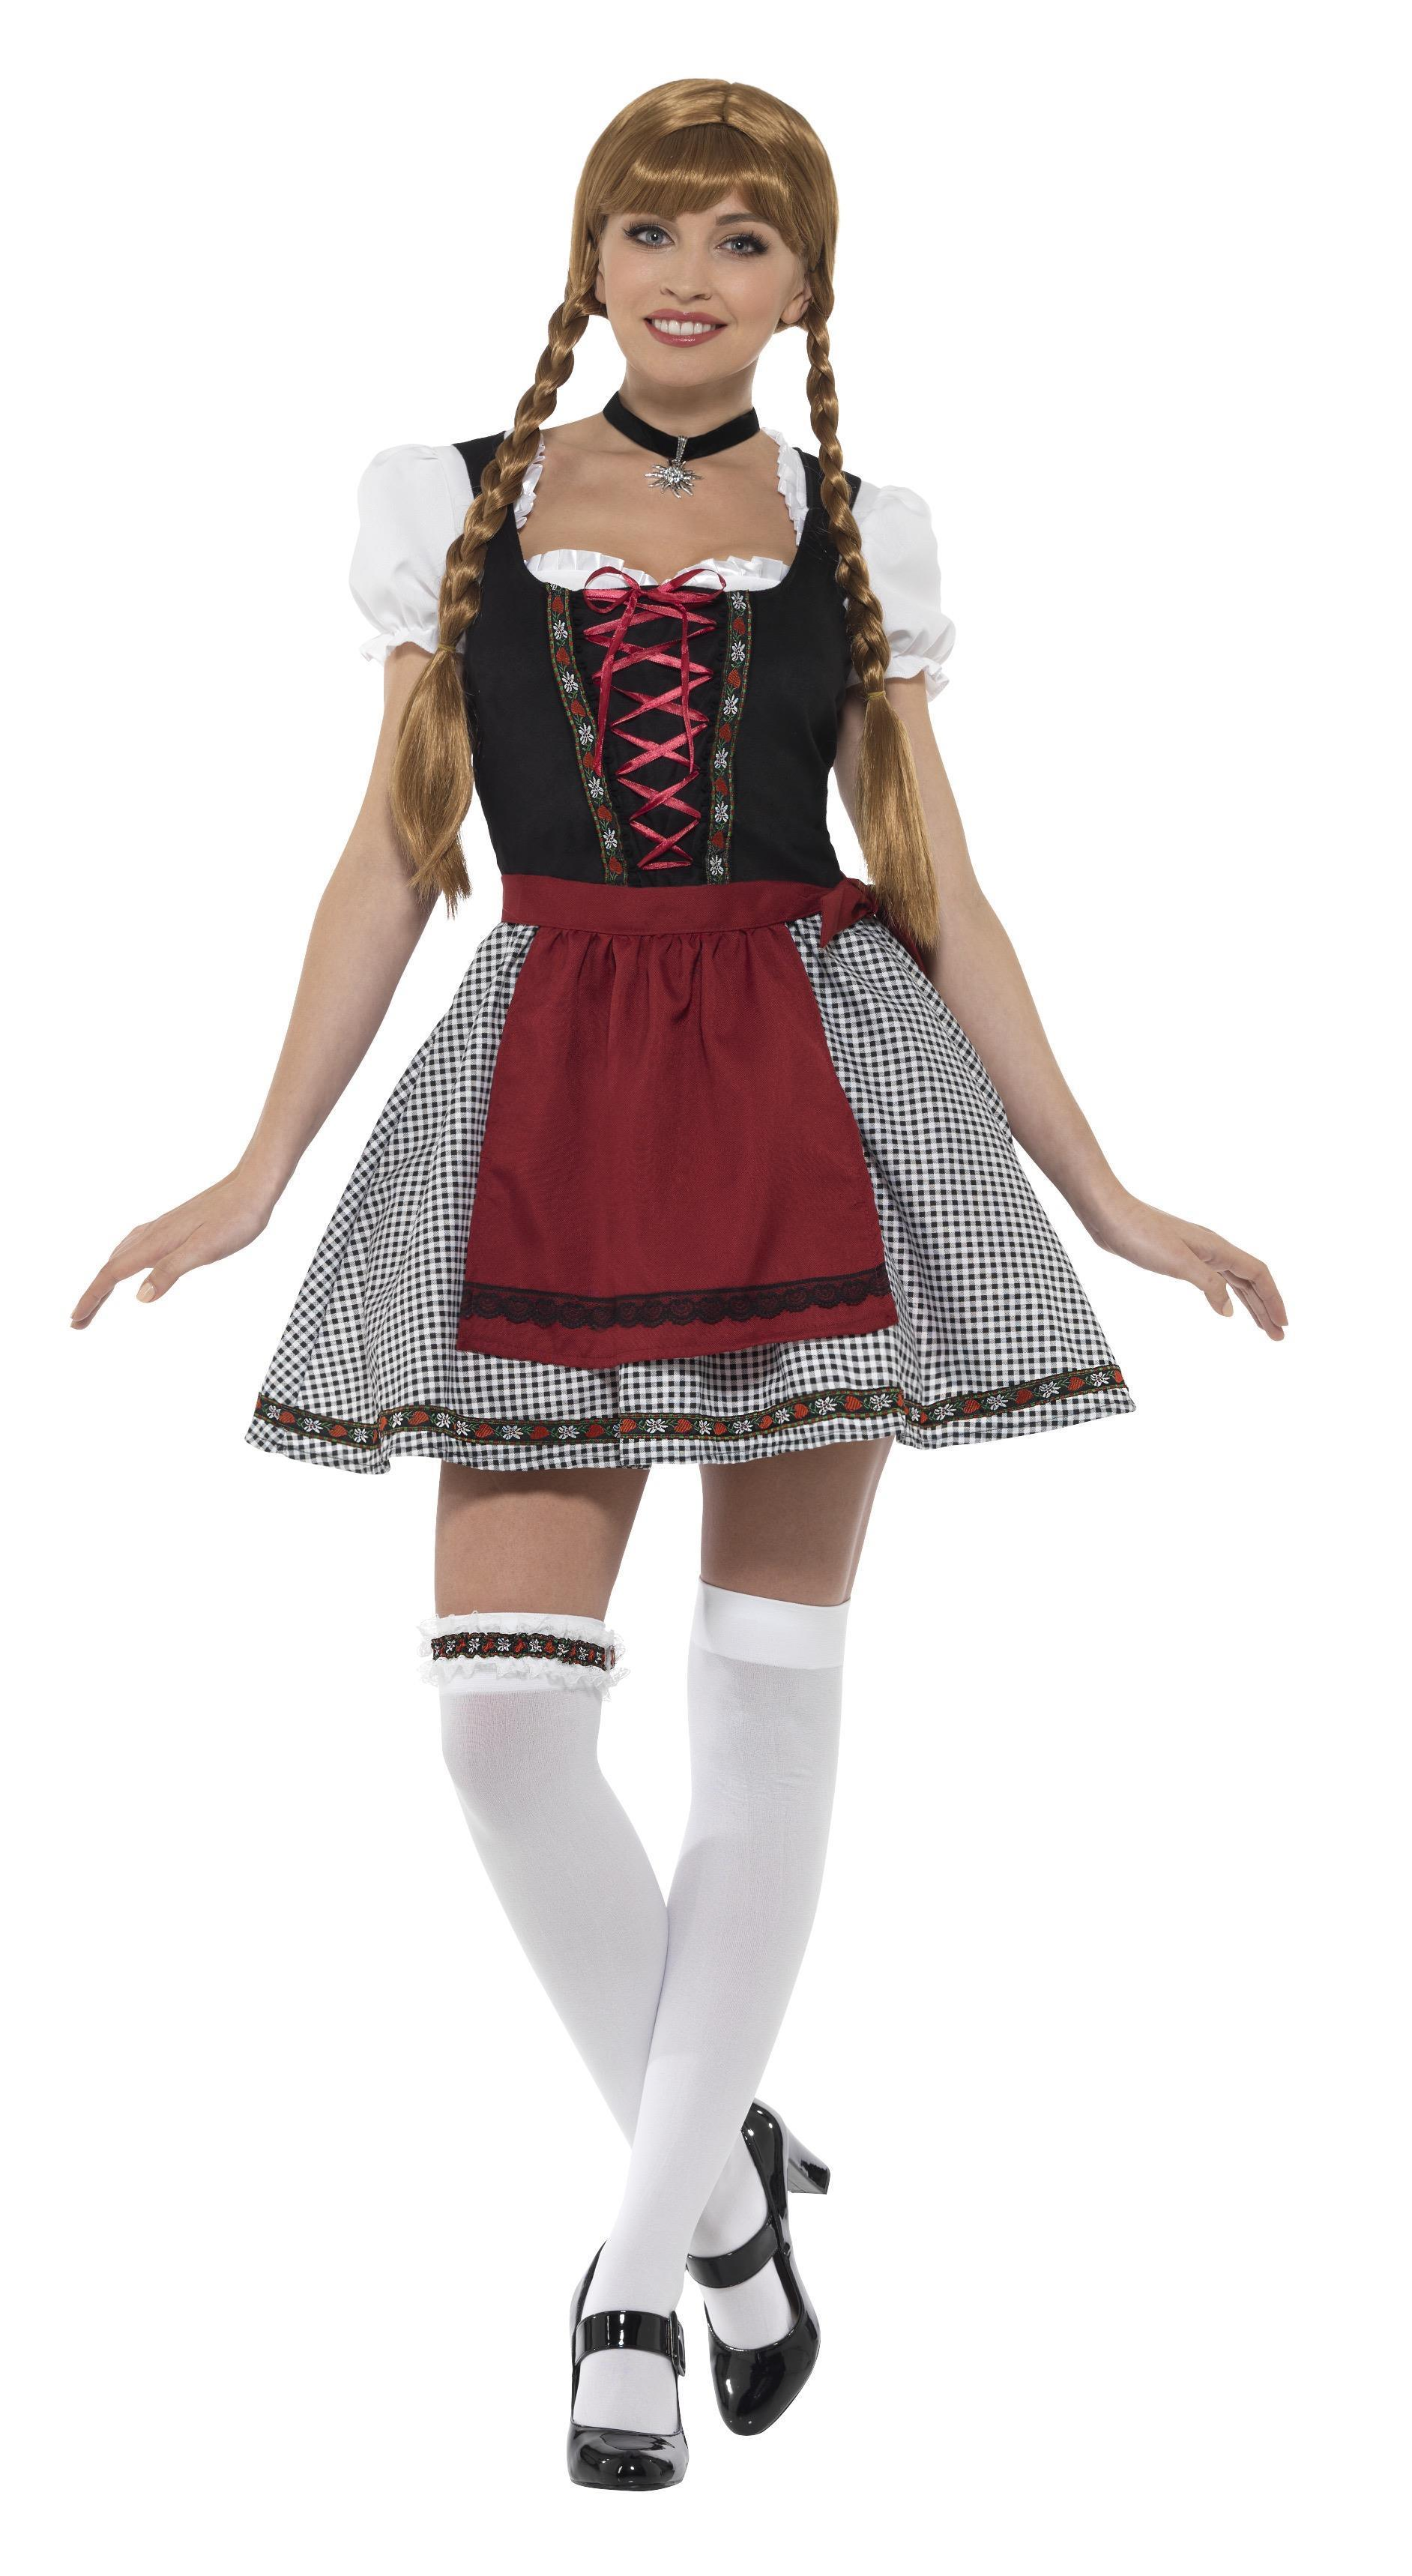 Flirty Fraulein Bavarian Costume Black